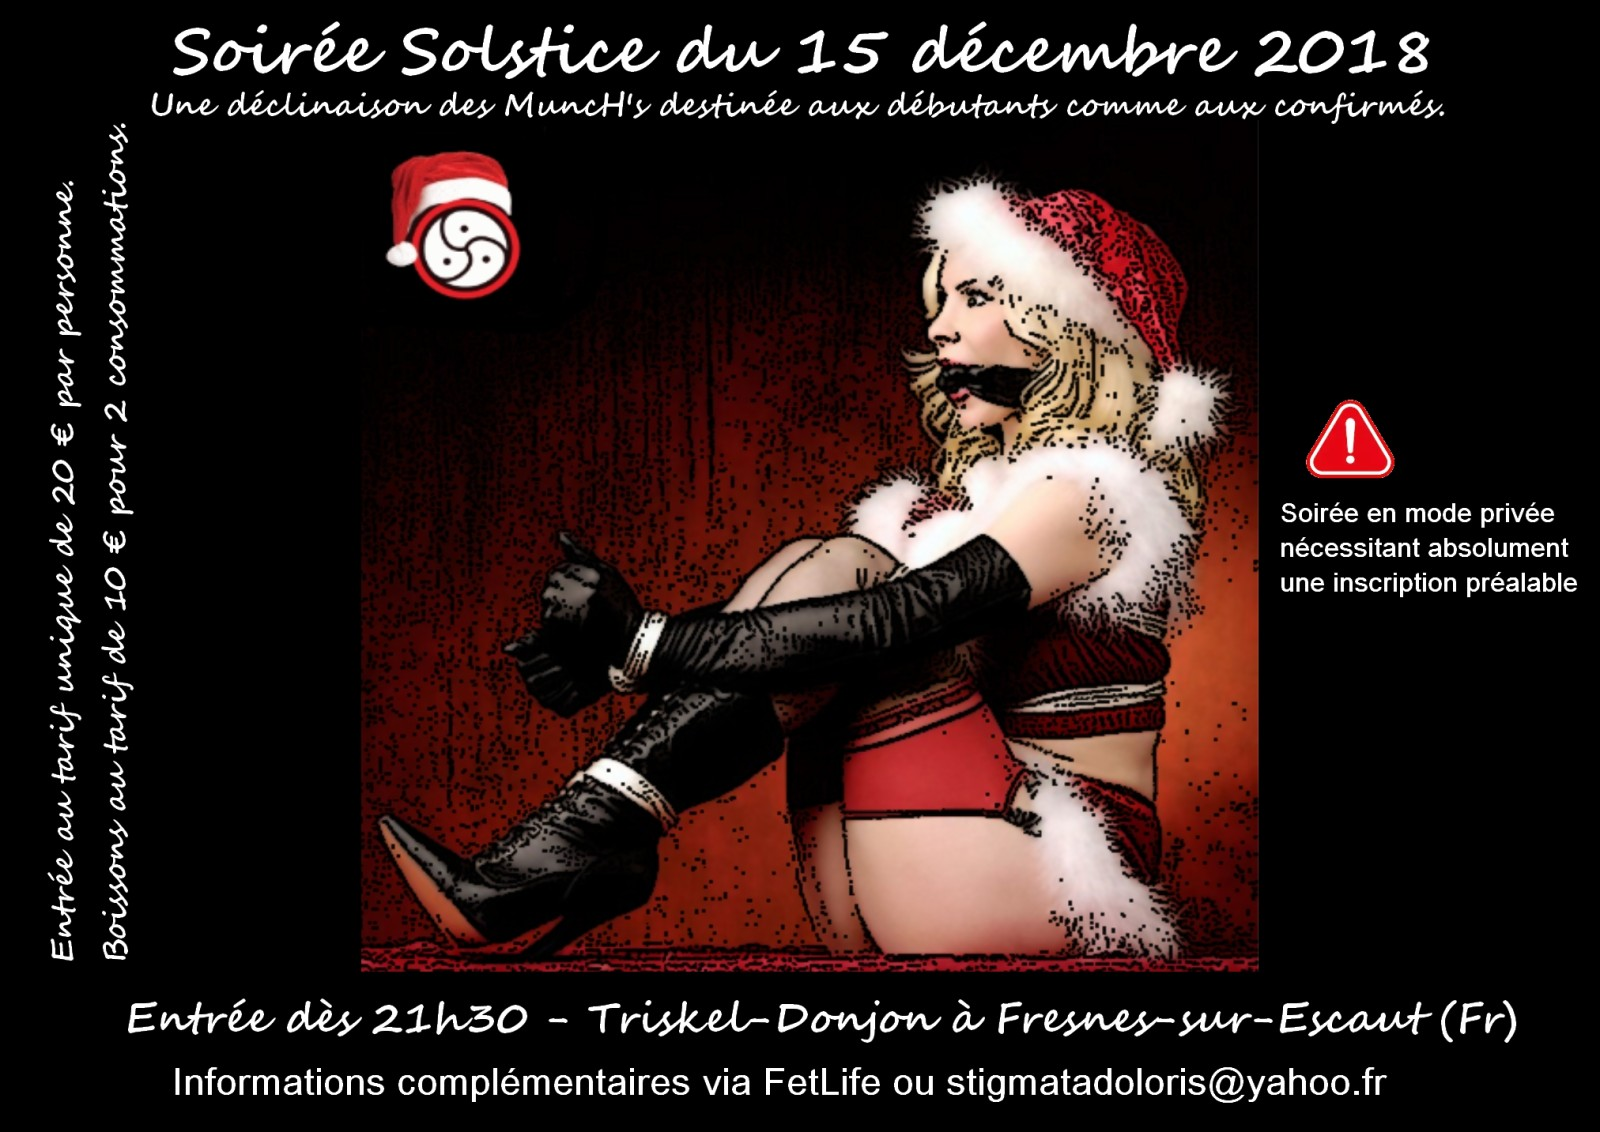 Flyer-officiel-solstice-triskel-2018.jpg